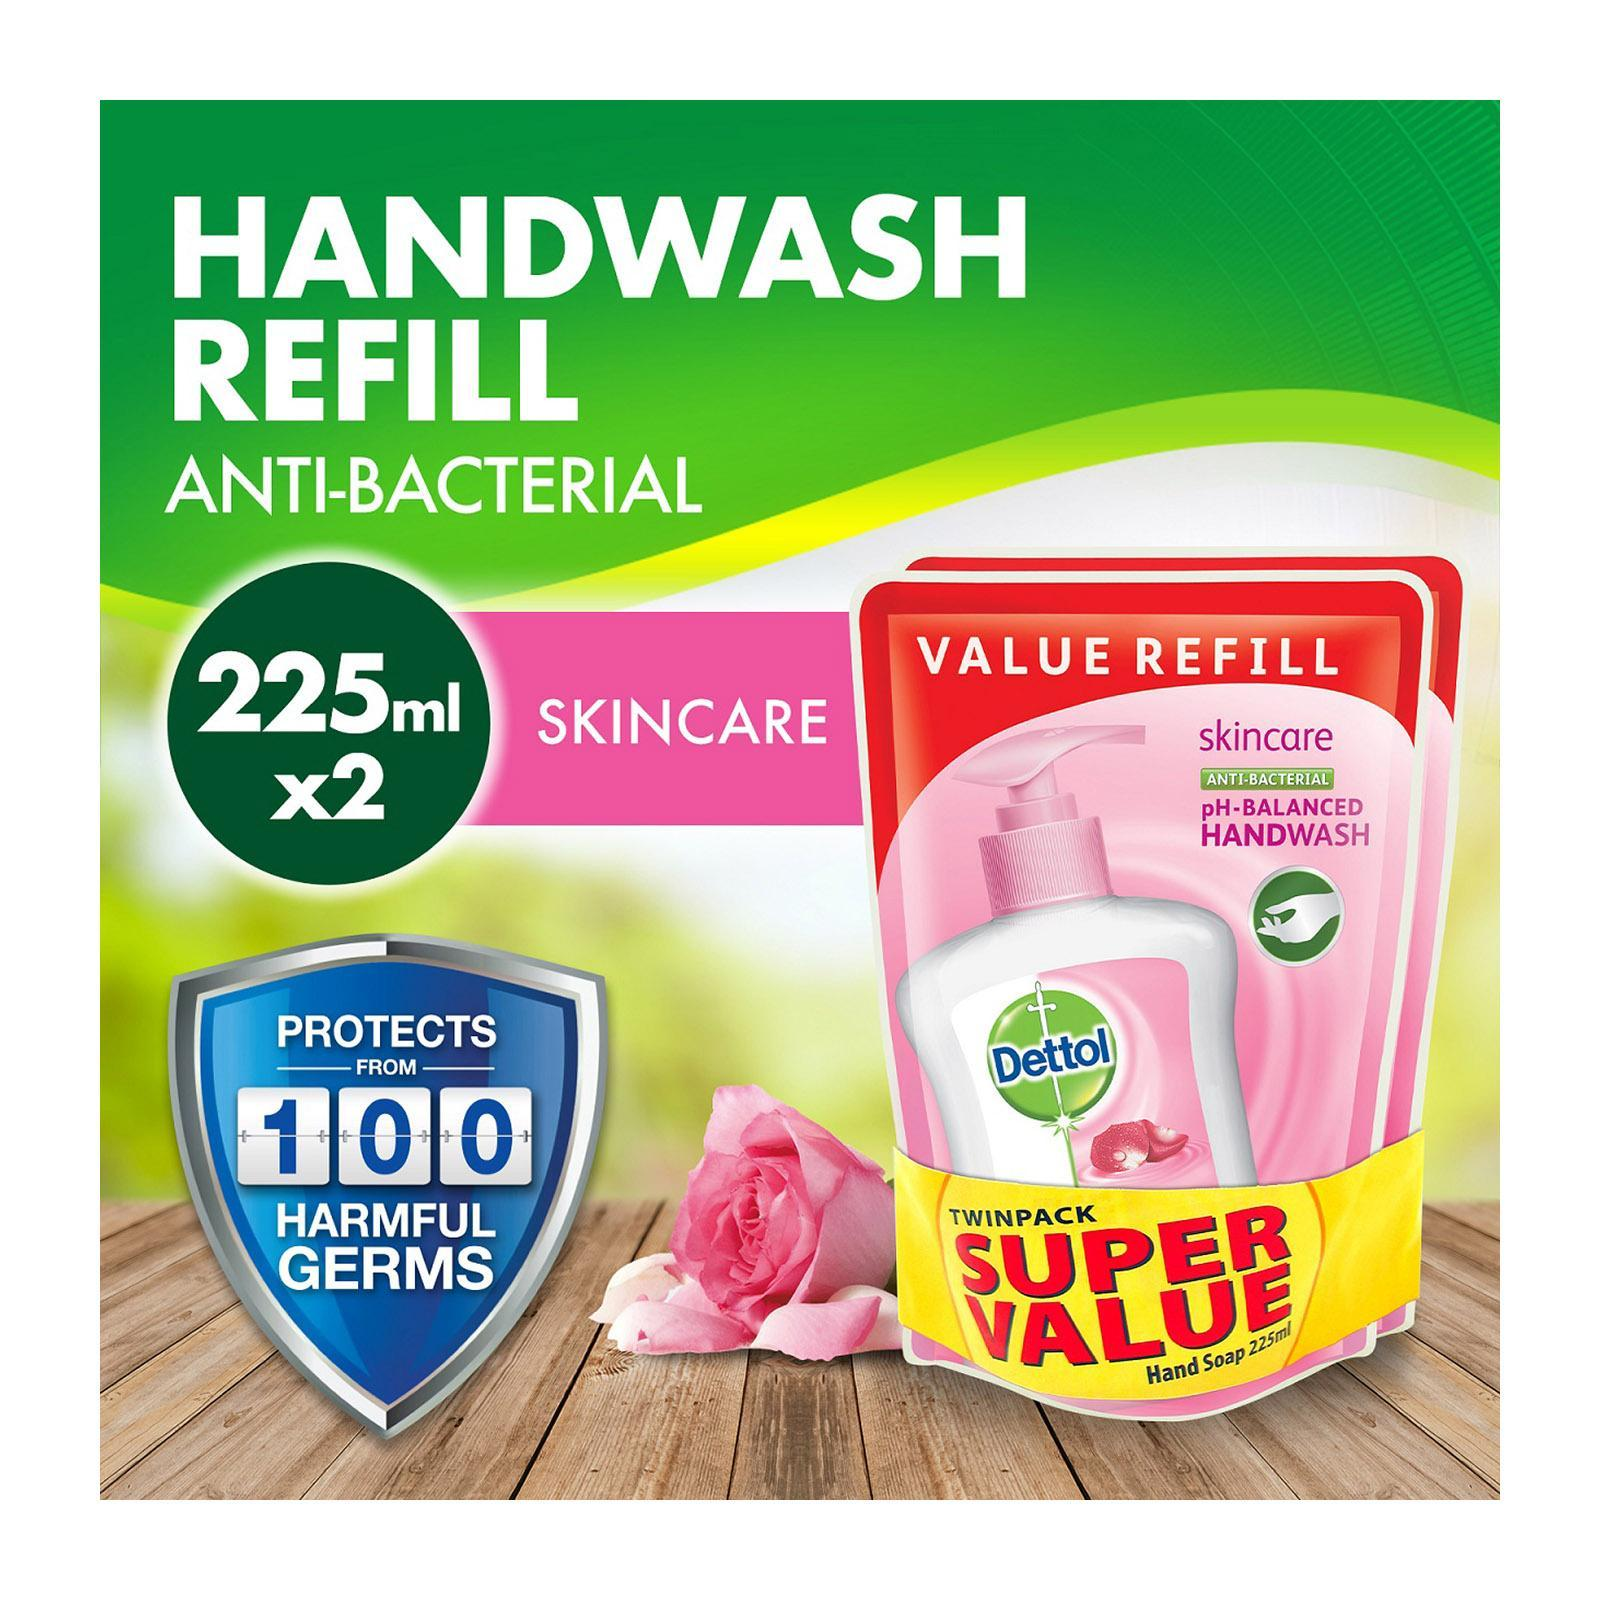 DETTOL skincare liquid hand wash twin pack refill pouch 225ml x2